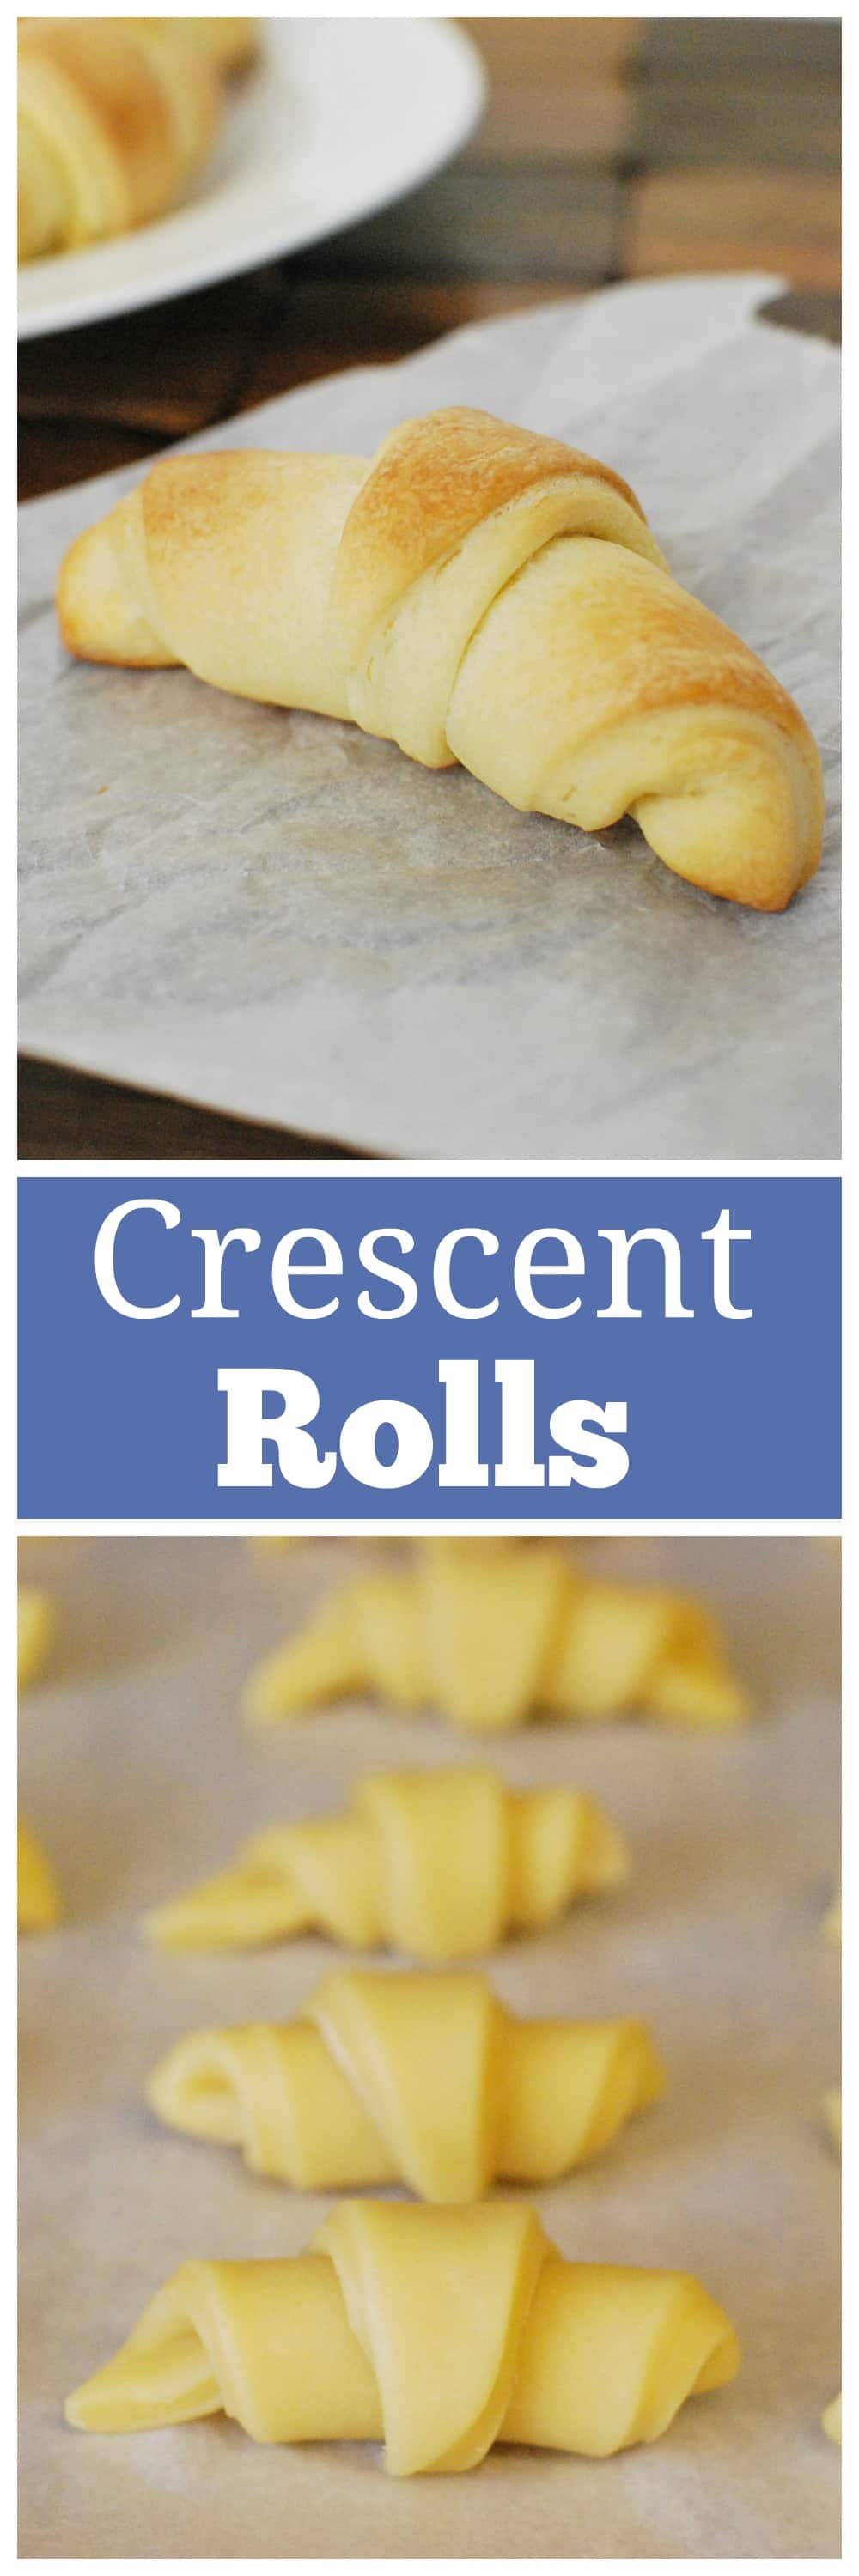 Crescent Rolls - easy buttery homemade crescent rolls. Skip the canned rolls and make your own!